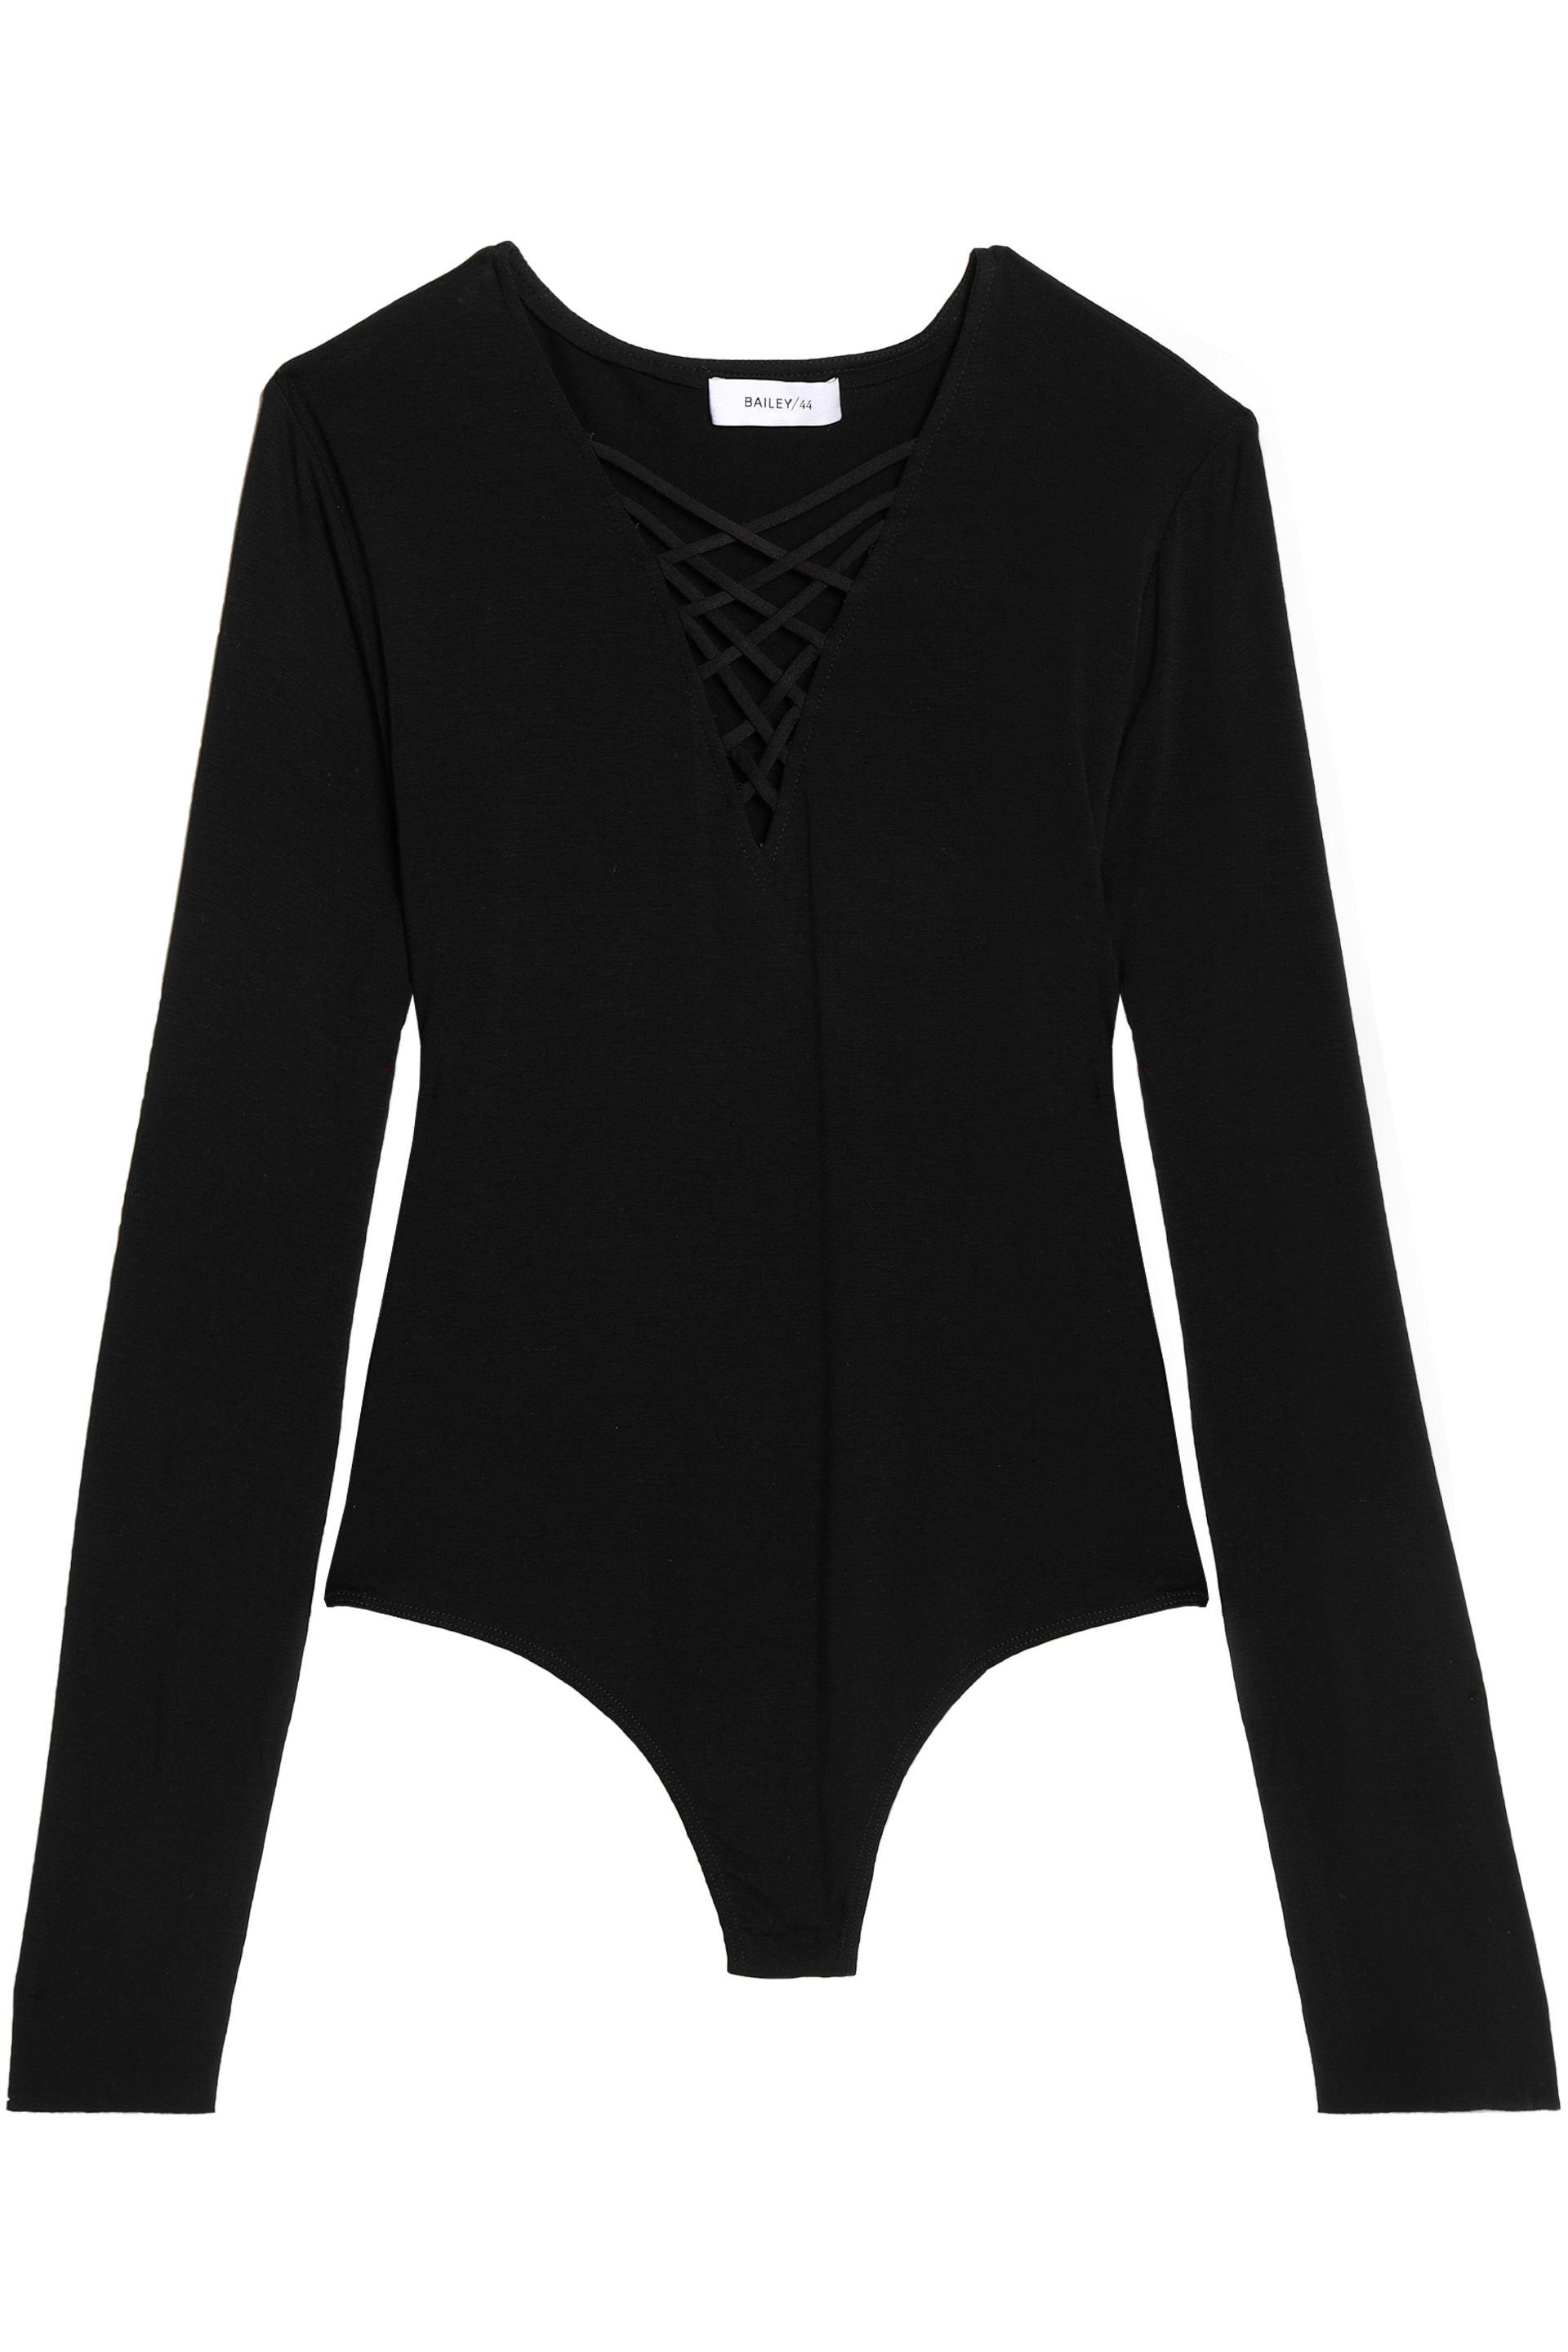 Bailey 44 Woman Lattice-trimmed Stretch-jersey Bodysuit Black Size L Bailey 44 Geniue Stockist For Sale Recommend For Sale Clearance Manchester Great Sale ZGhVMwWOFA